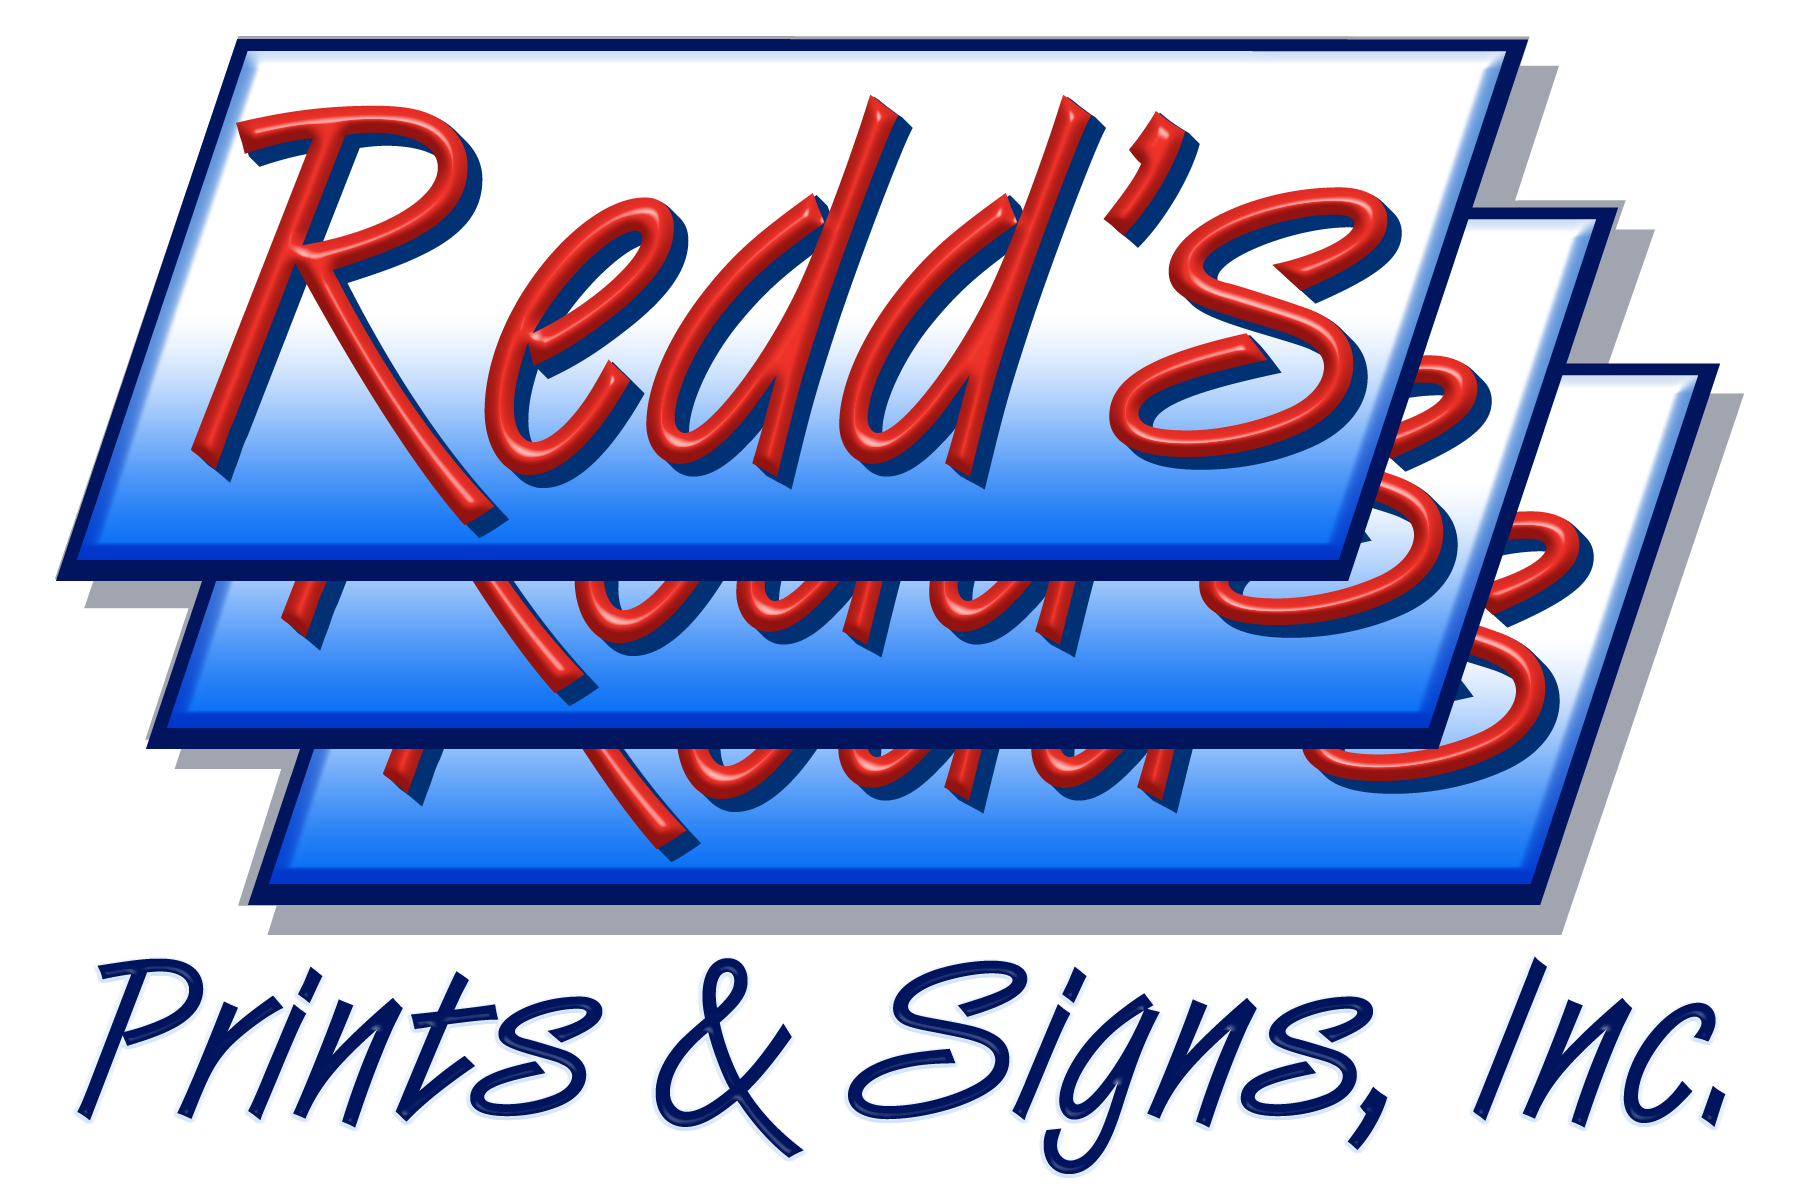 Redd's Prints & Signs Inc.